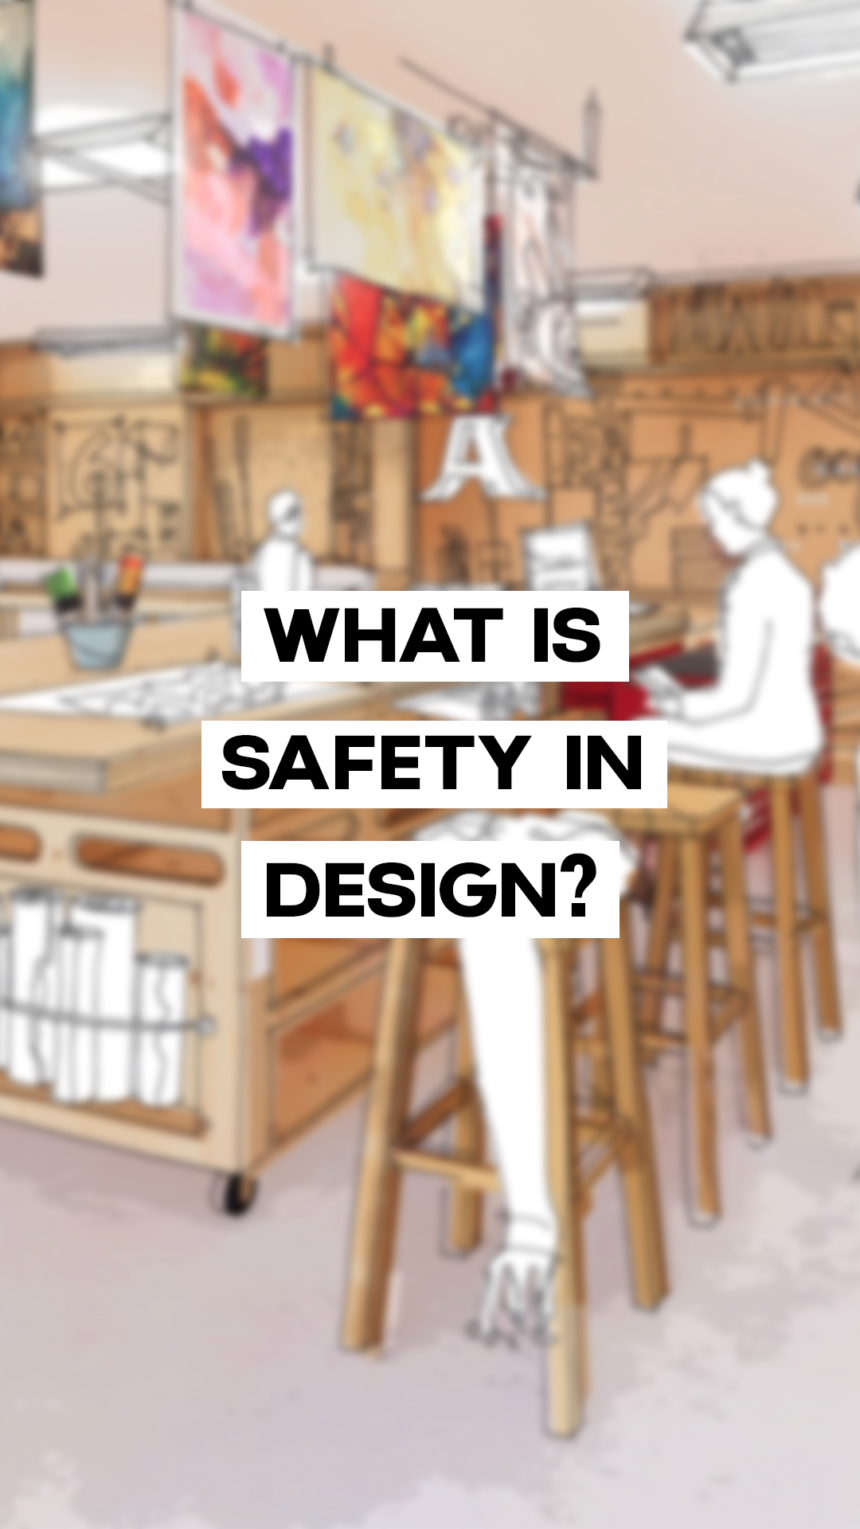 What is safety in design?